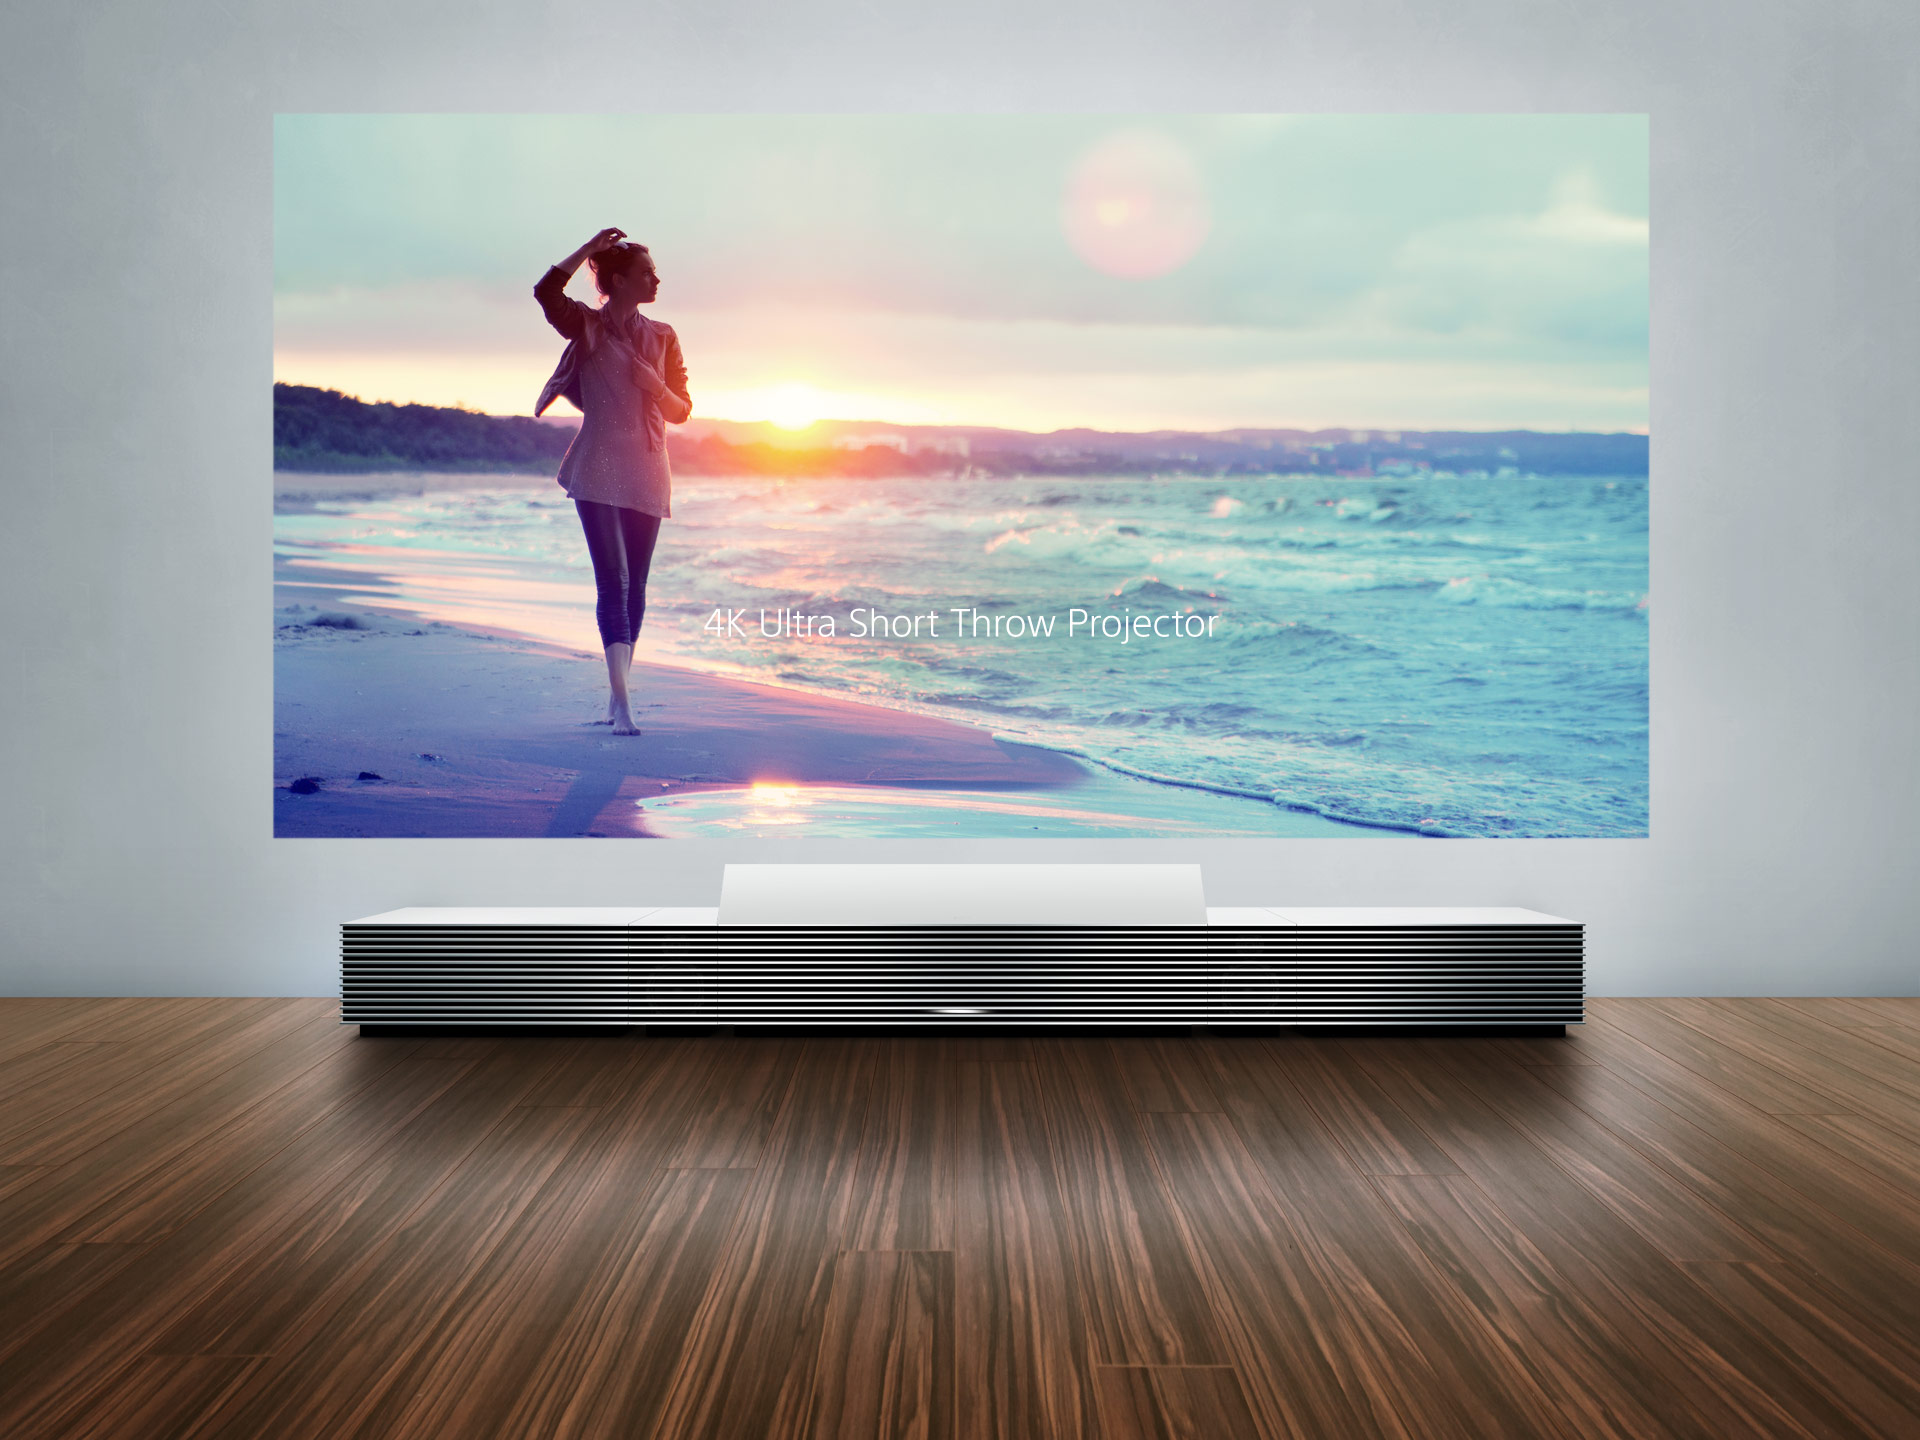 Sony 4K Television Projector